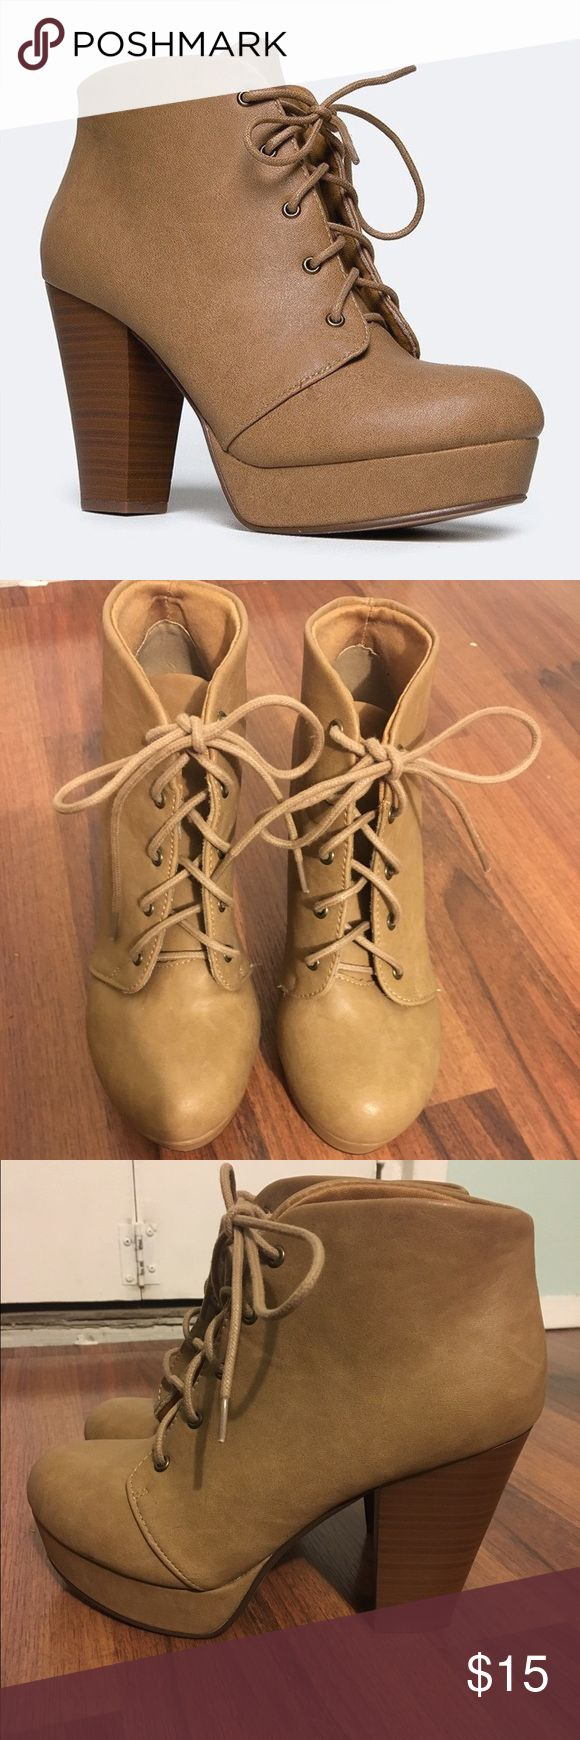 chunky high heel platform lace up booties worn a couple times but in good condition Shoes Lace Up Boots